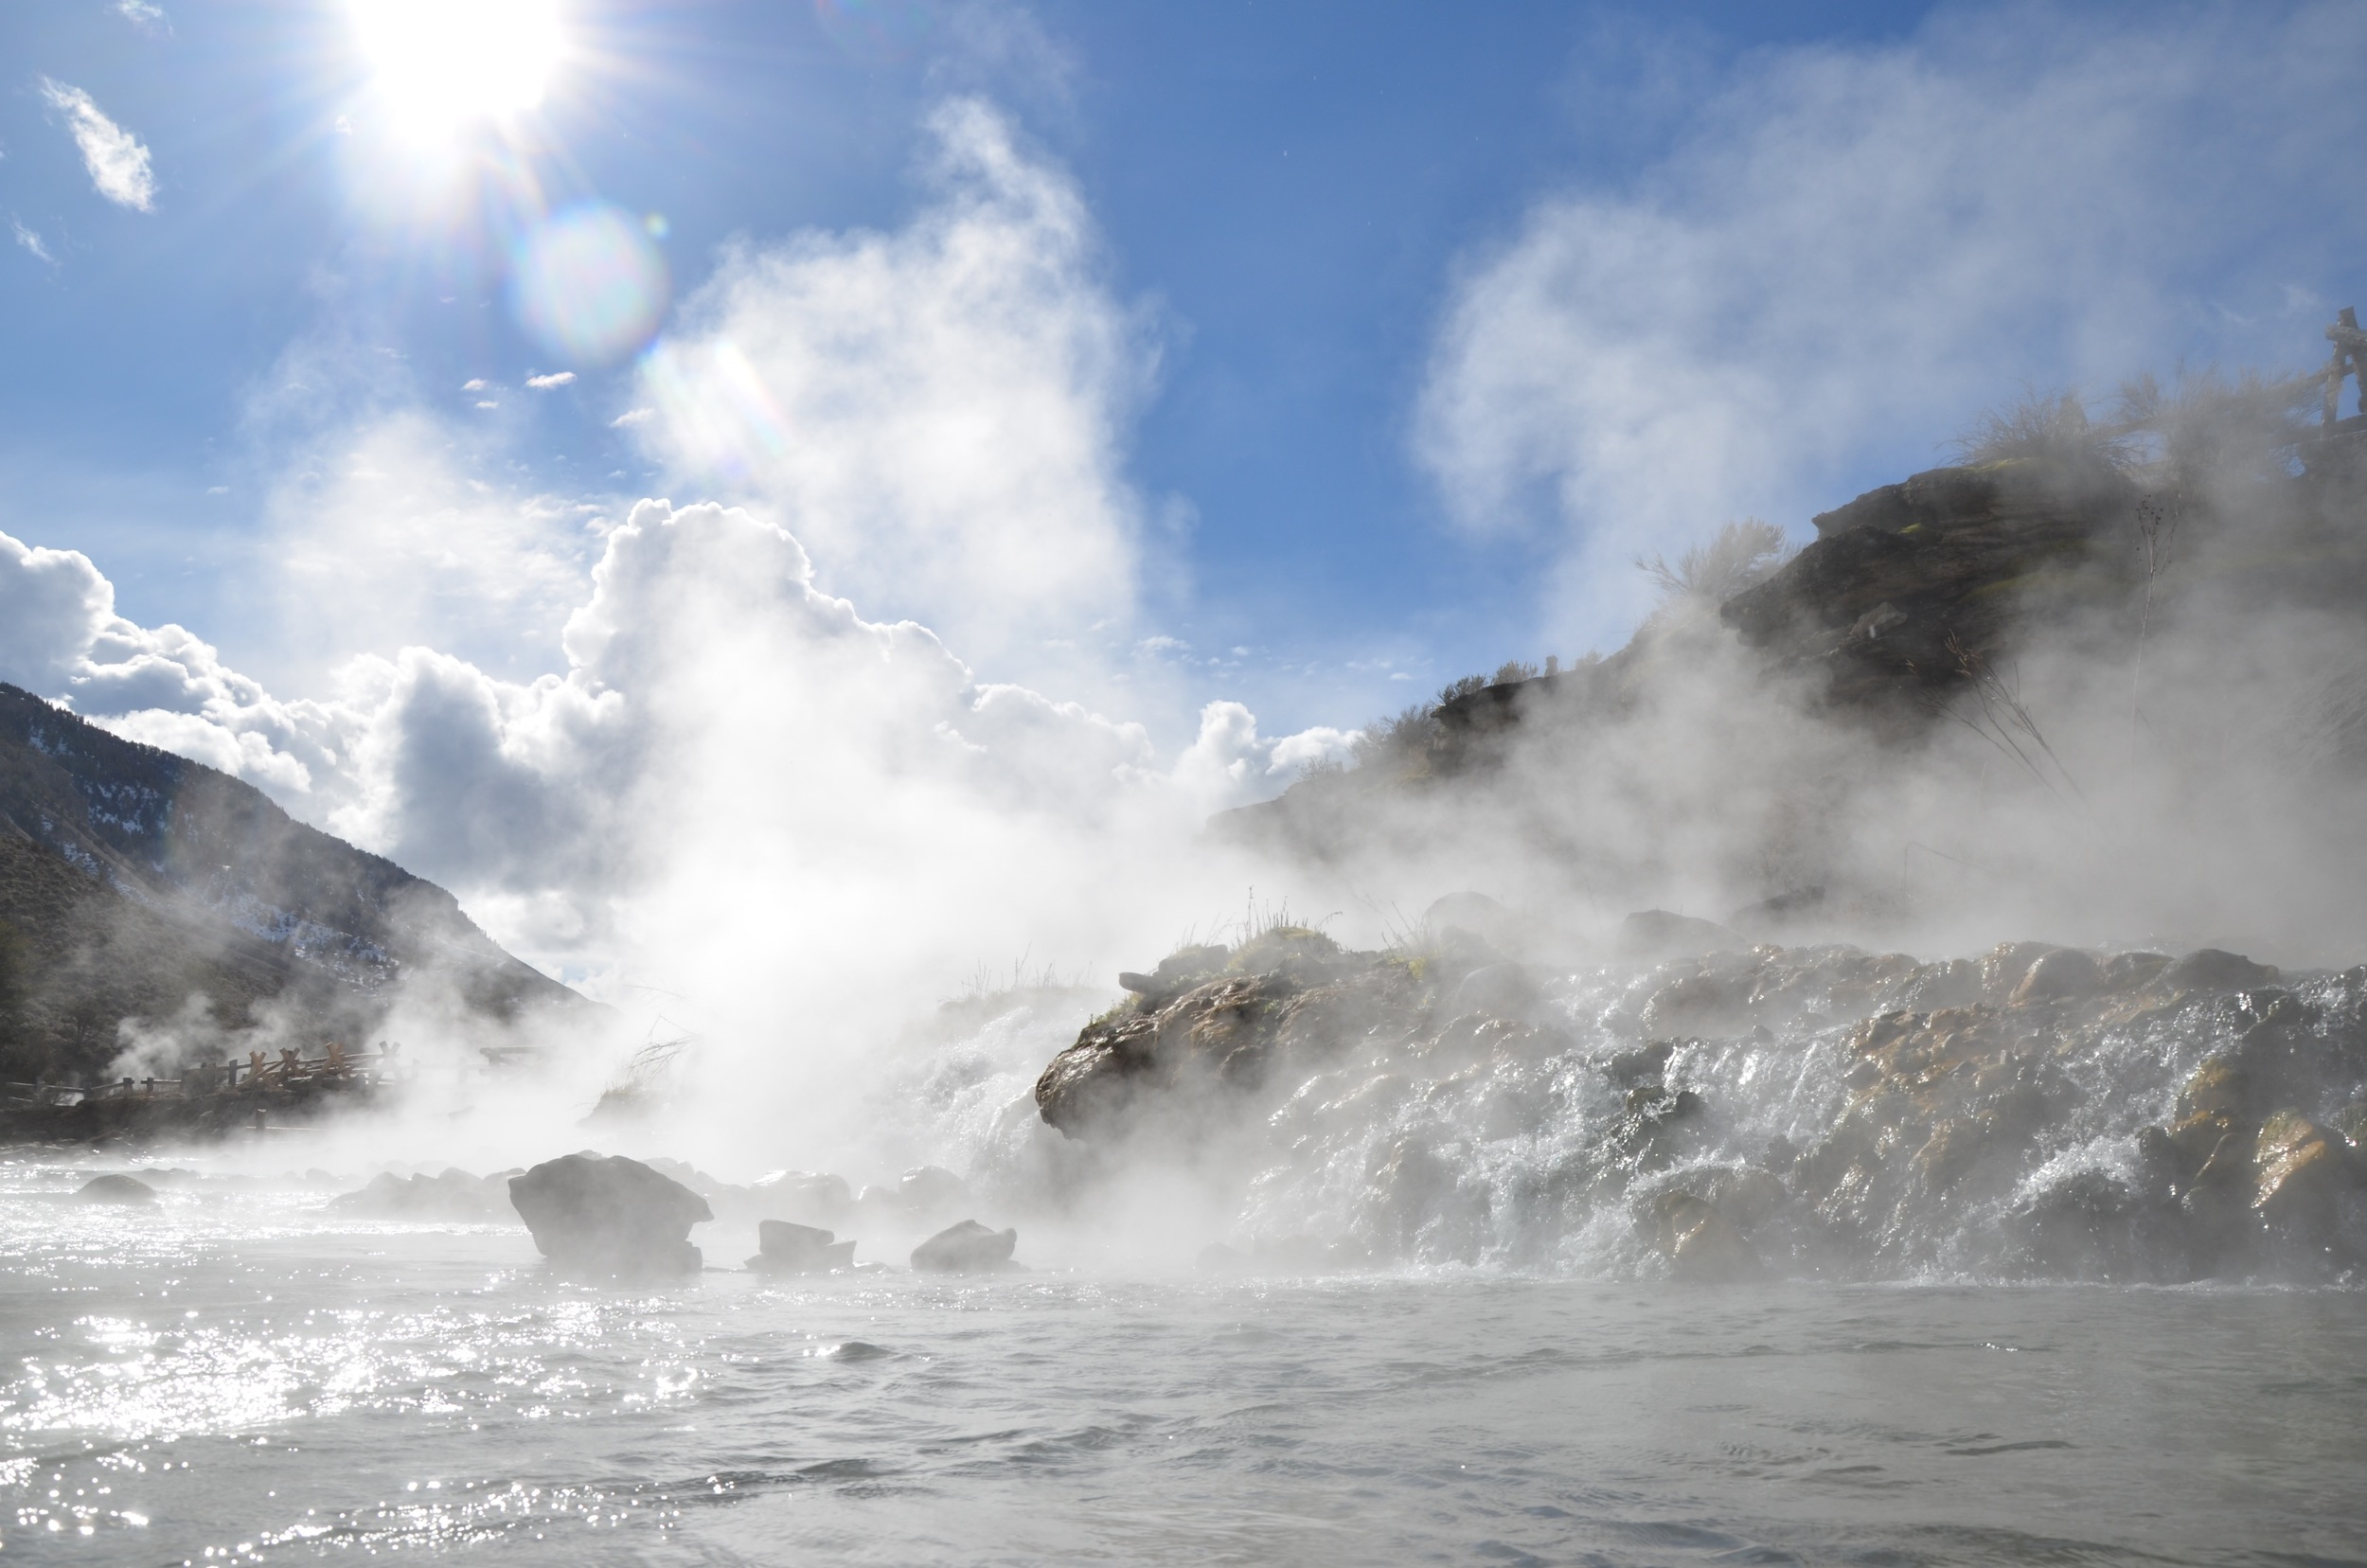 Take a dip in the Boiling River